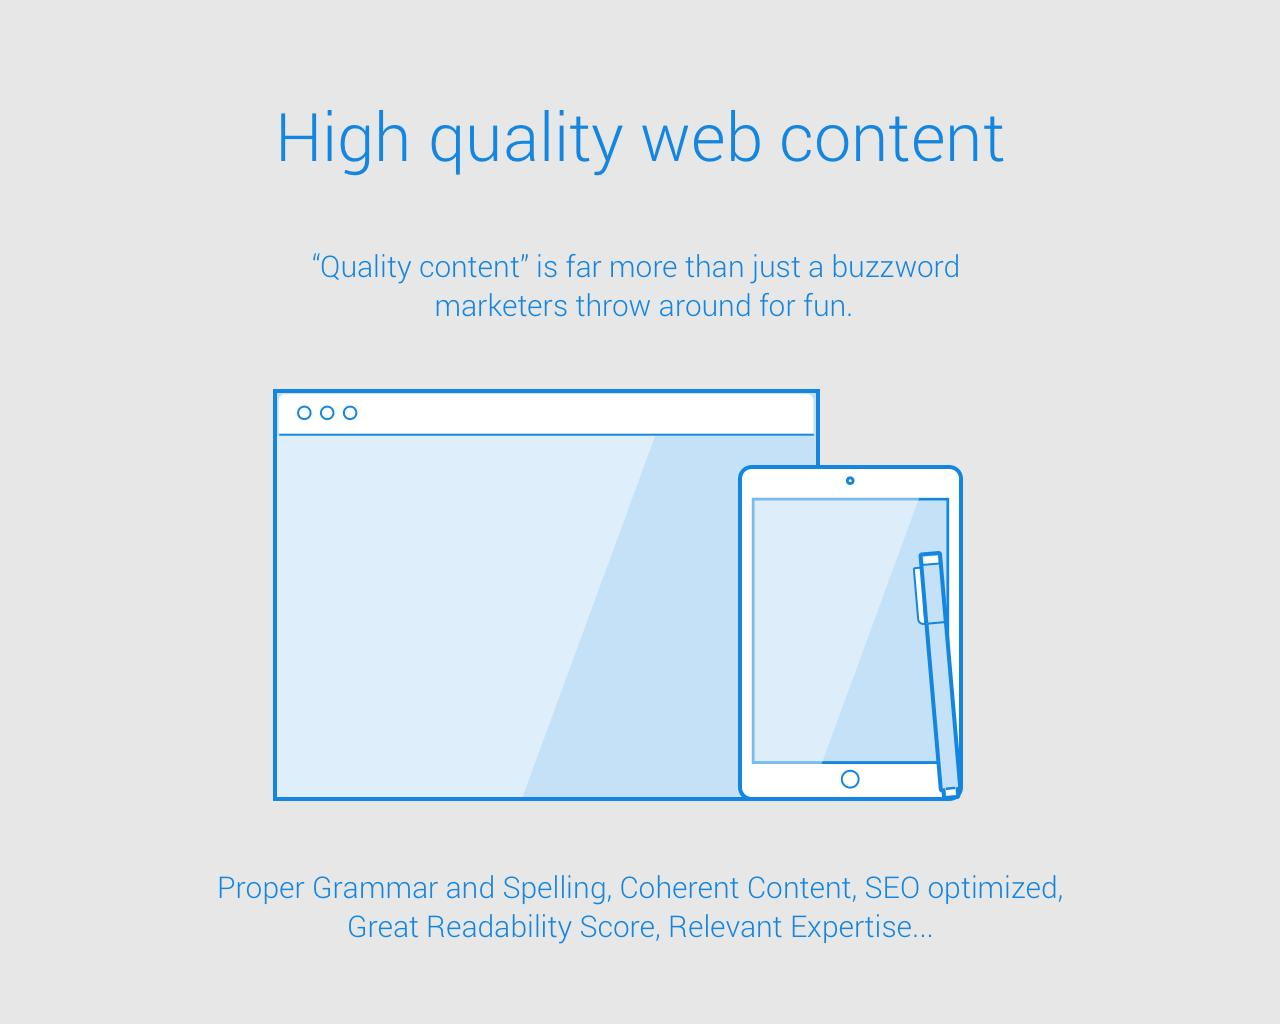 High Quality Website Content by eddienewman - 102566